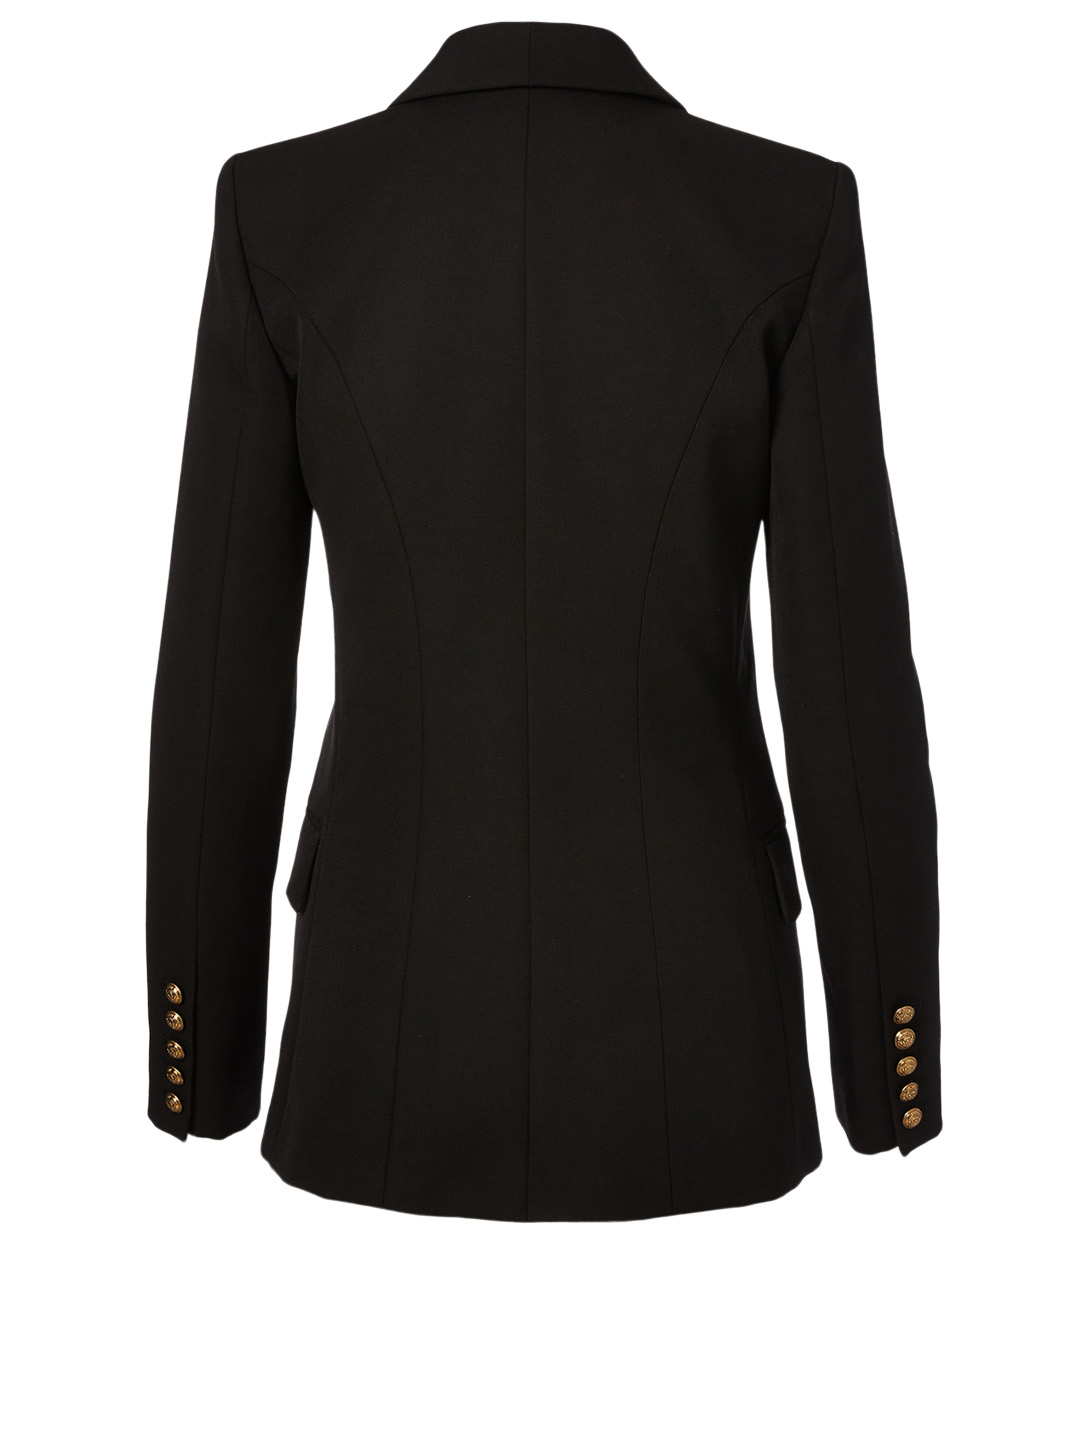 BALMAIN Wool Double-Breasted Blazer With Oversized Buttons Women's Black